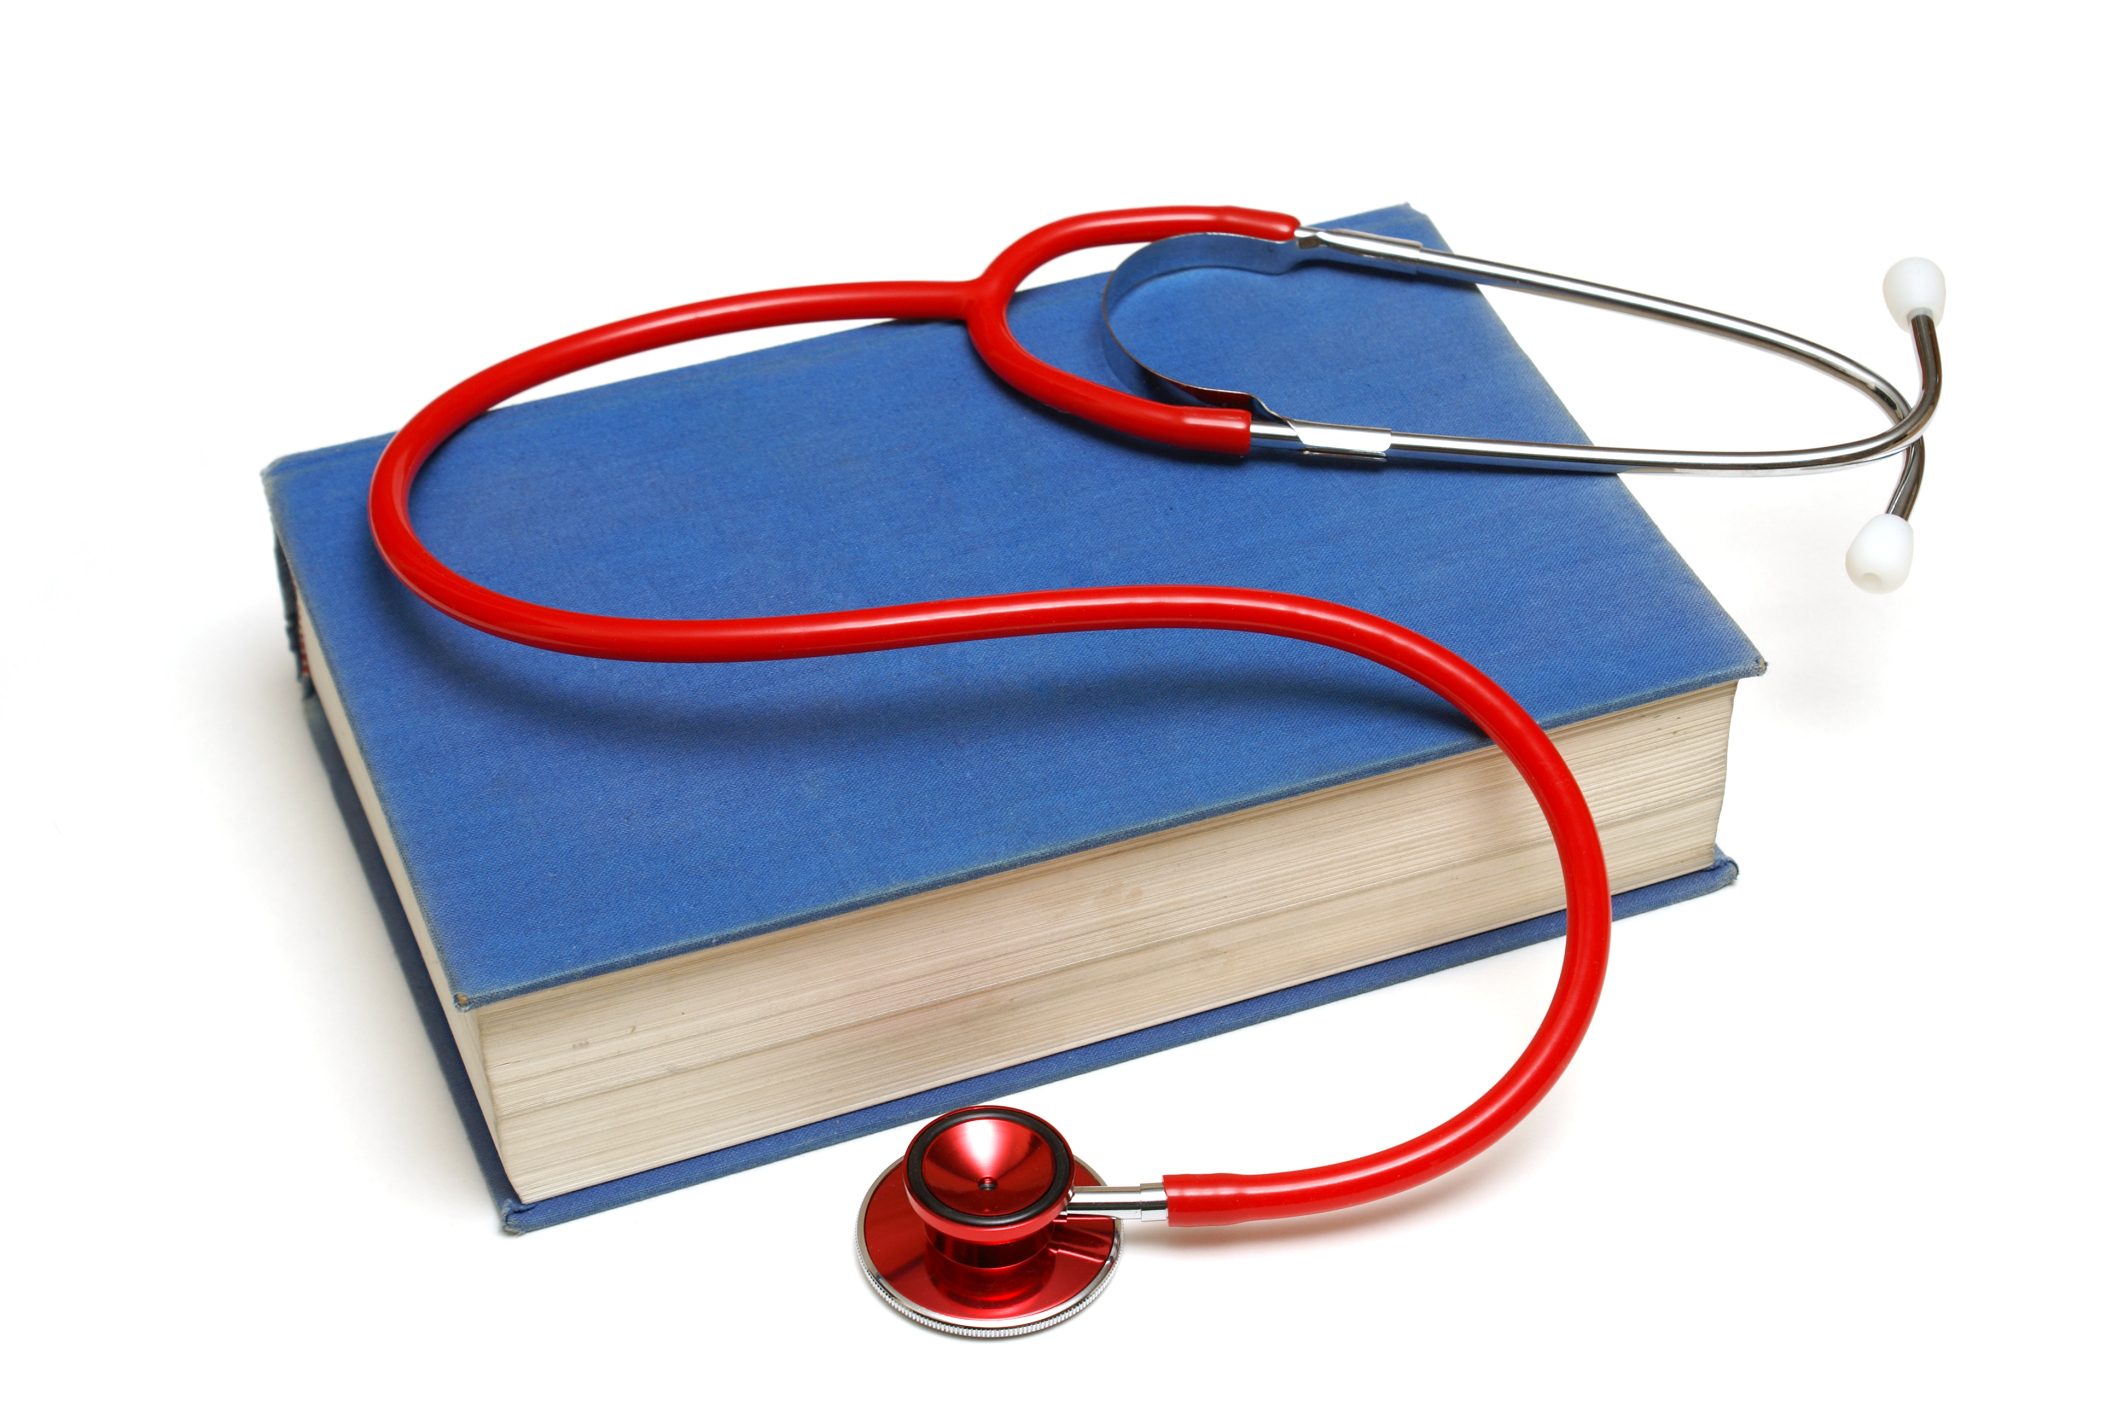 Photo of a stethoscope lying on top of a textbook.